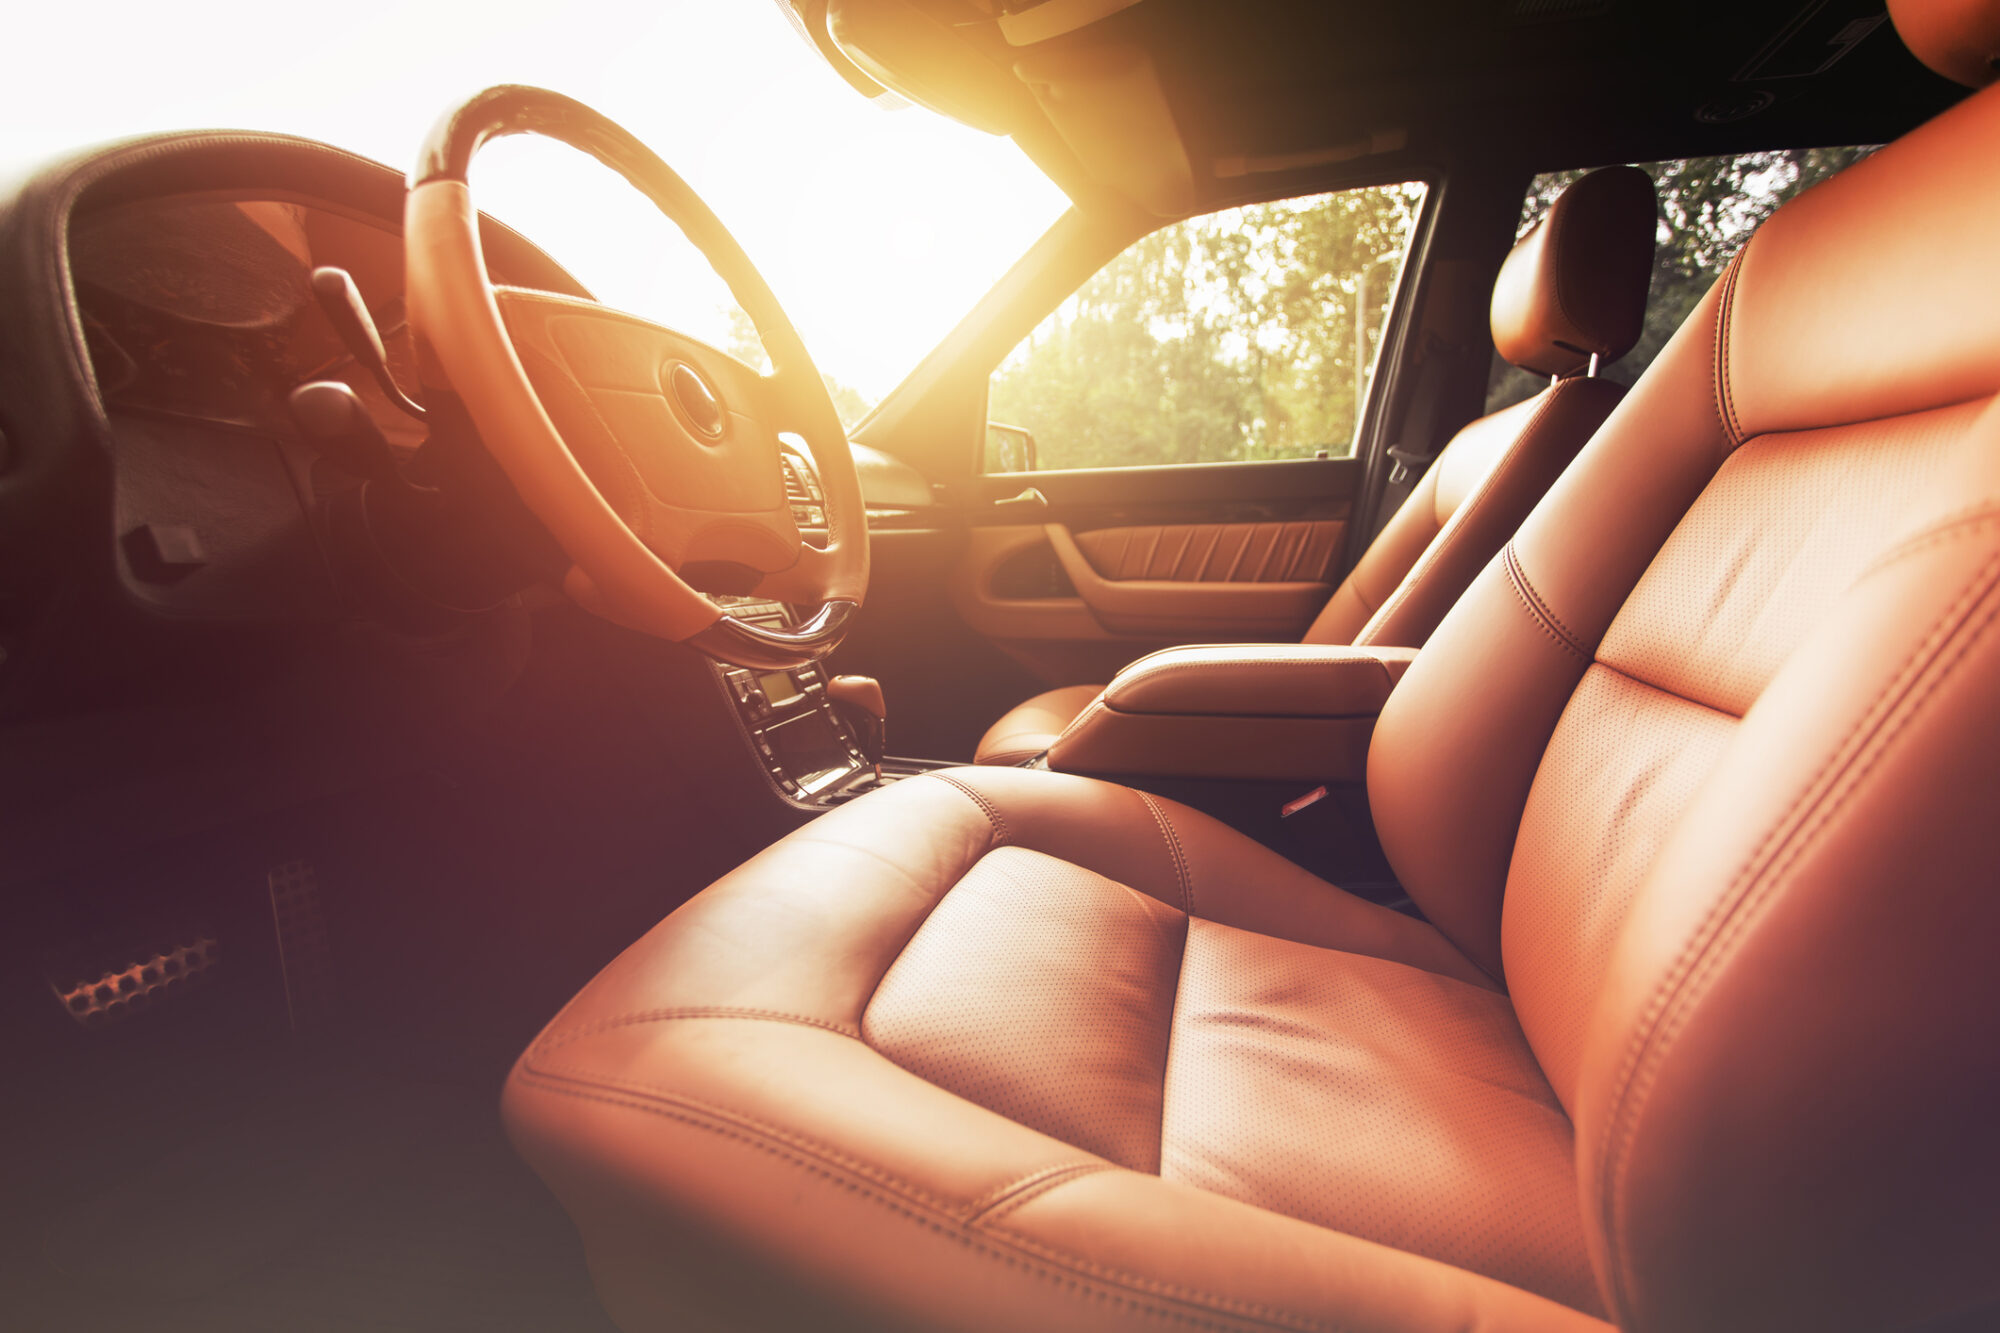 To minimize sun damage, we suggest having your home and automobile windows tinted.